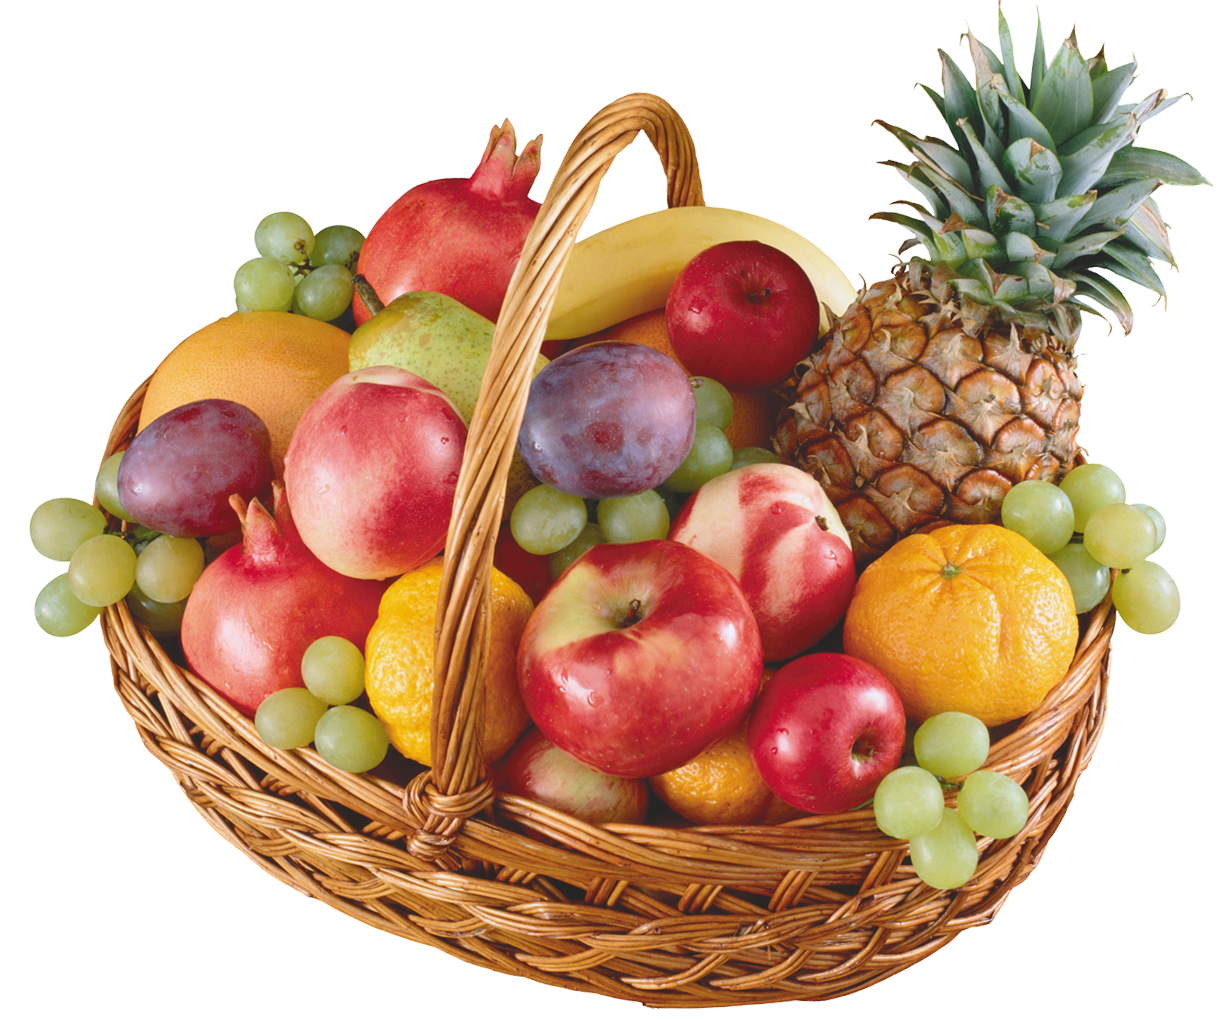 Basket with best web. Fruits clipart png clip art royalty free stock